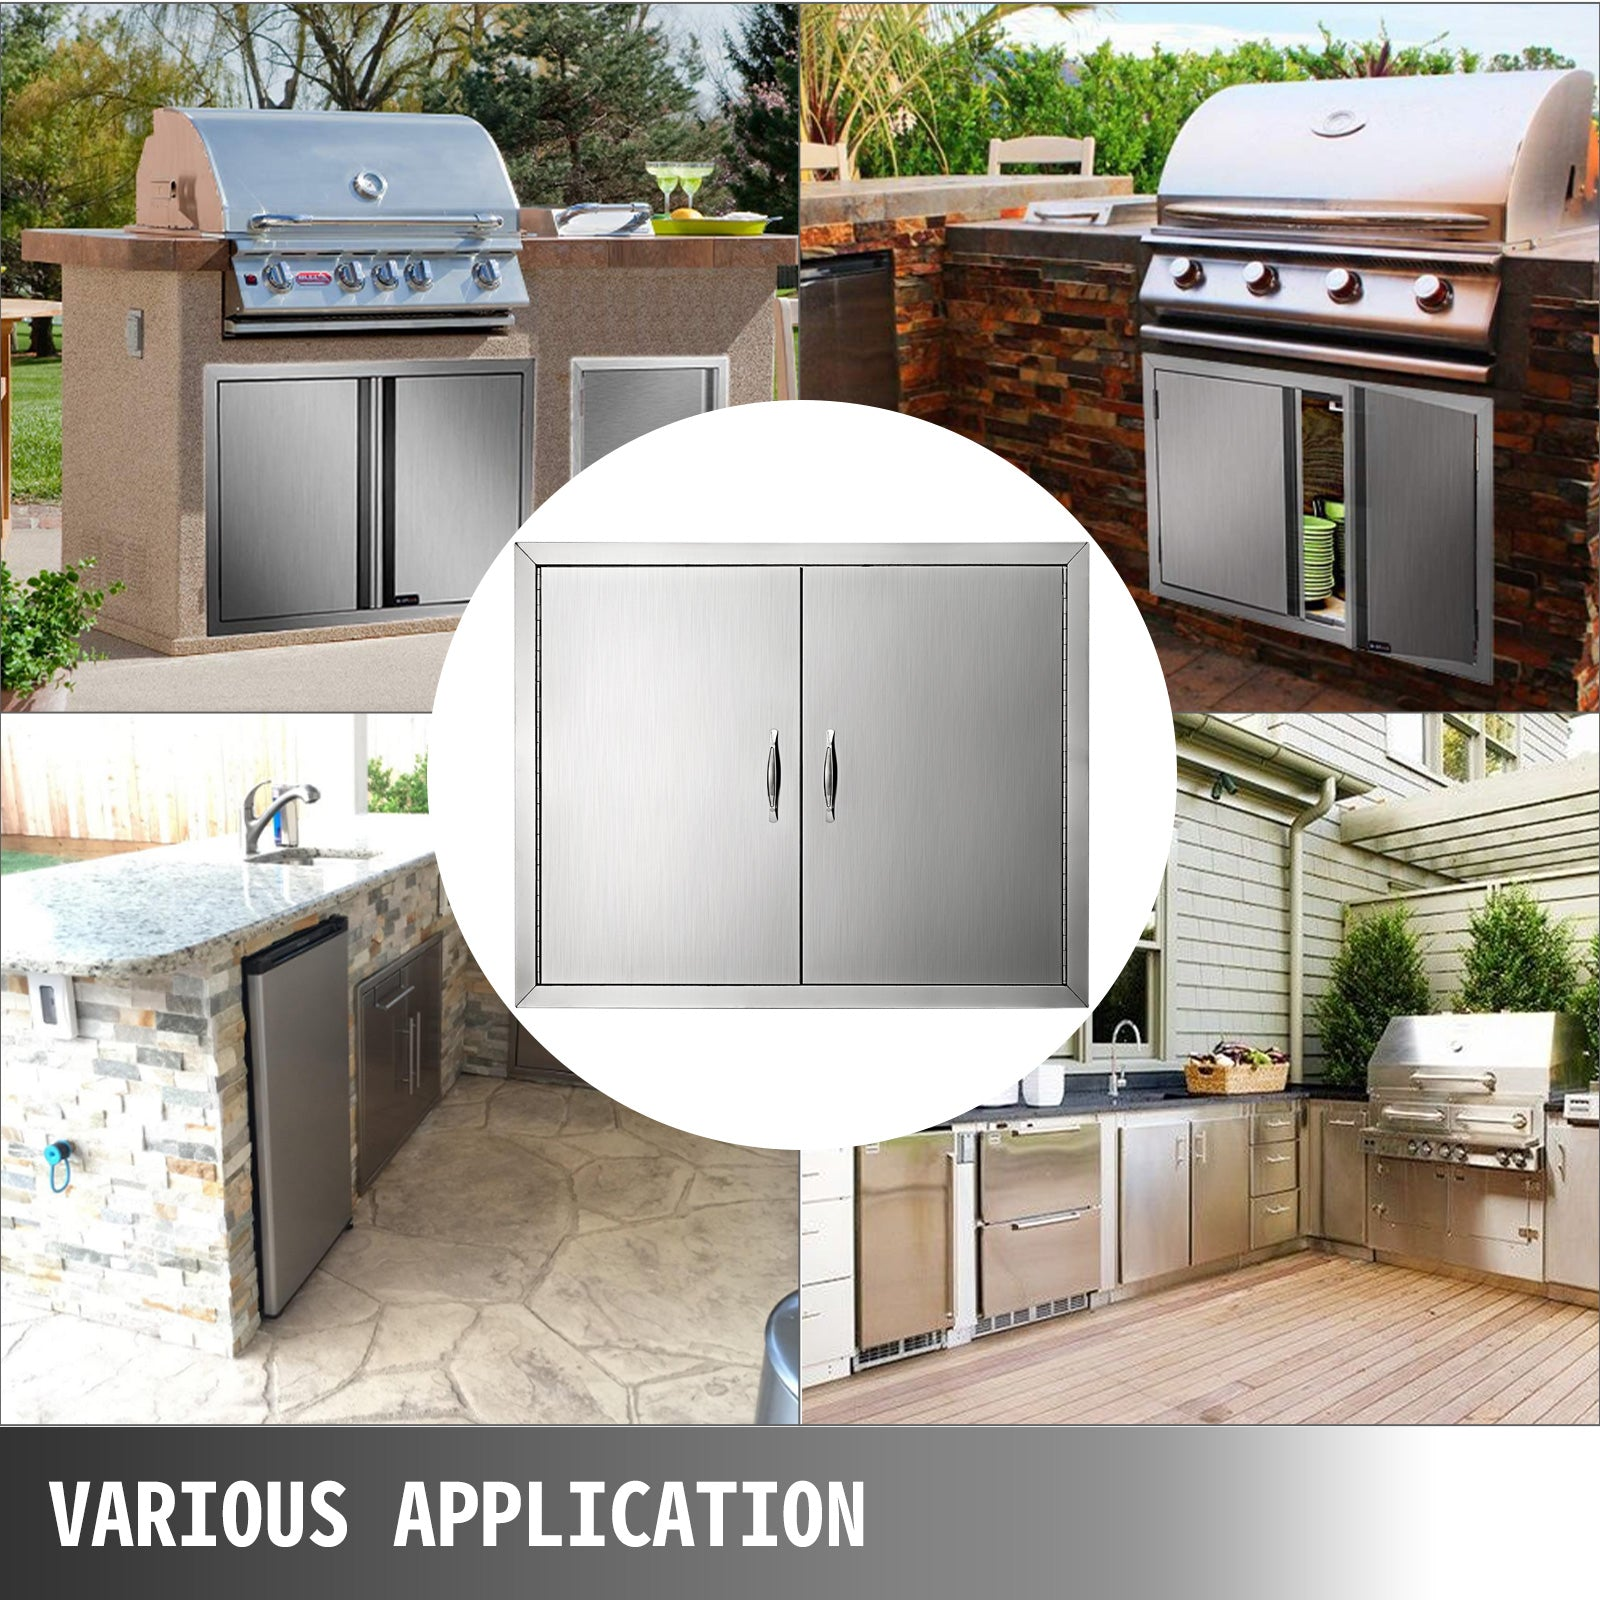 "Bbq 31""x24"" Access Double Walled Door Stainless Doors Storage Outdoor Grill"